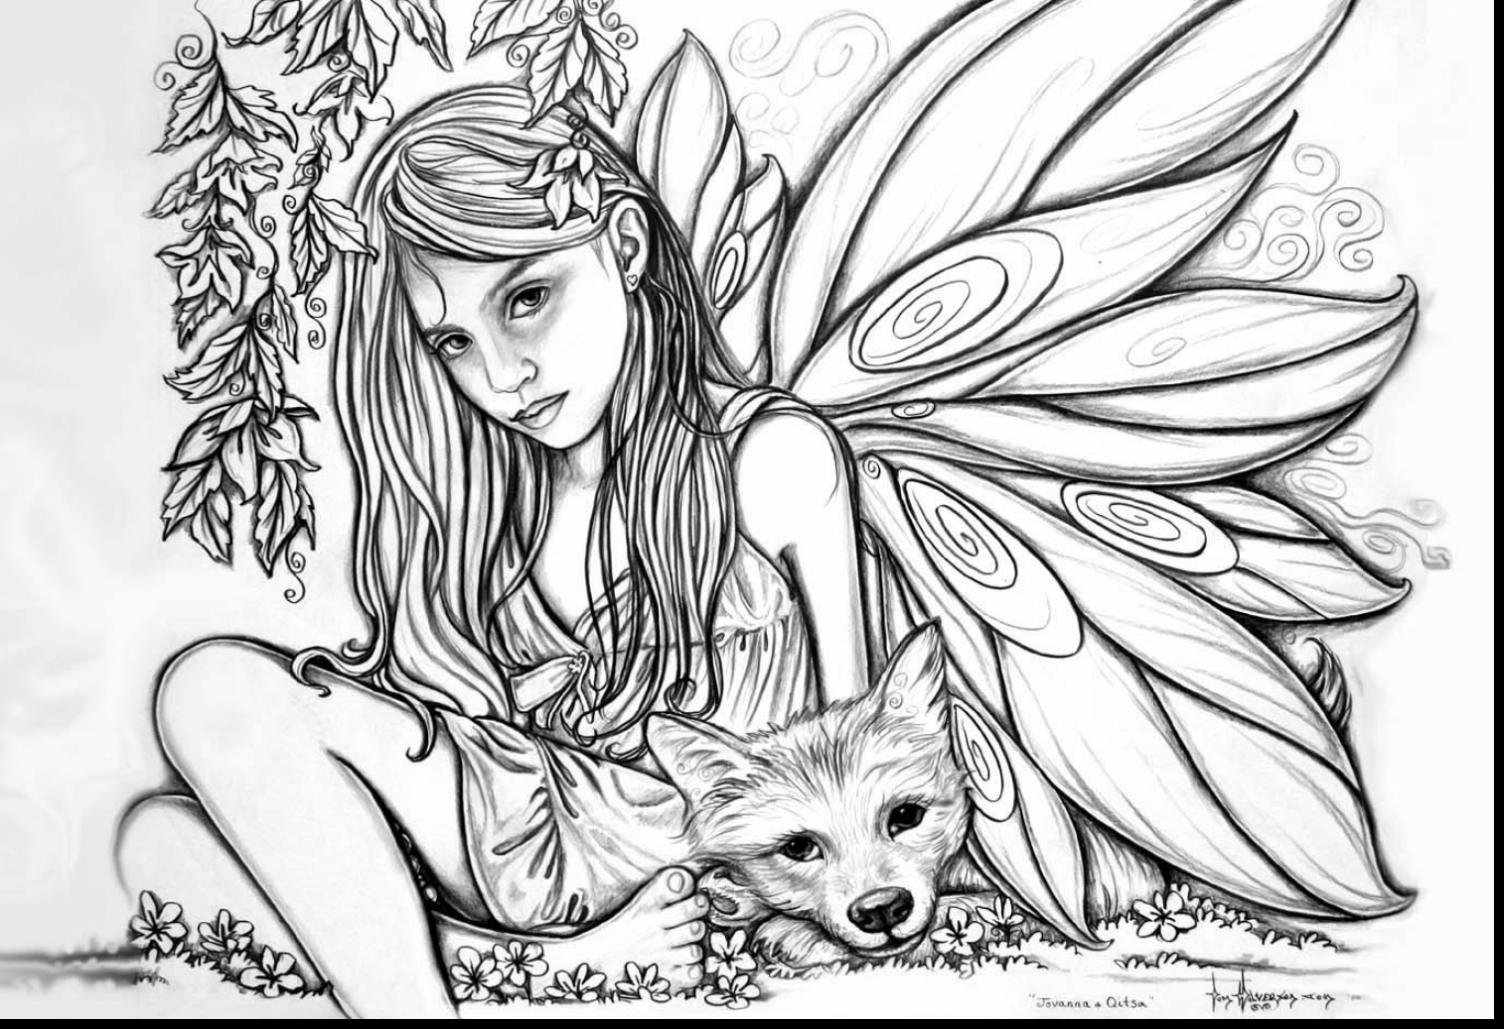 coloring pages for adults hd hd free printable coloring pages for adults fairies photos pages hd for coloring adults